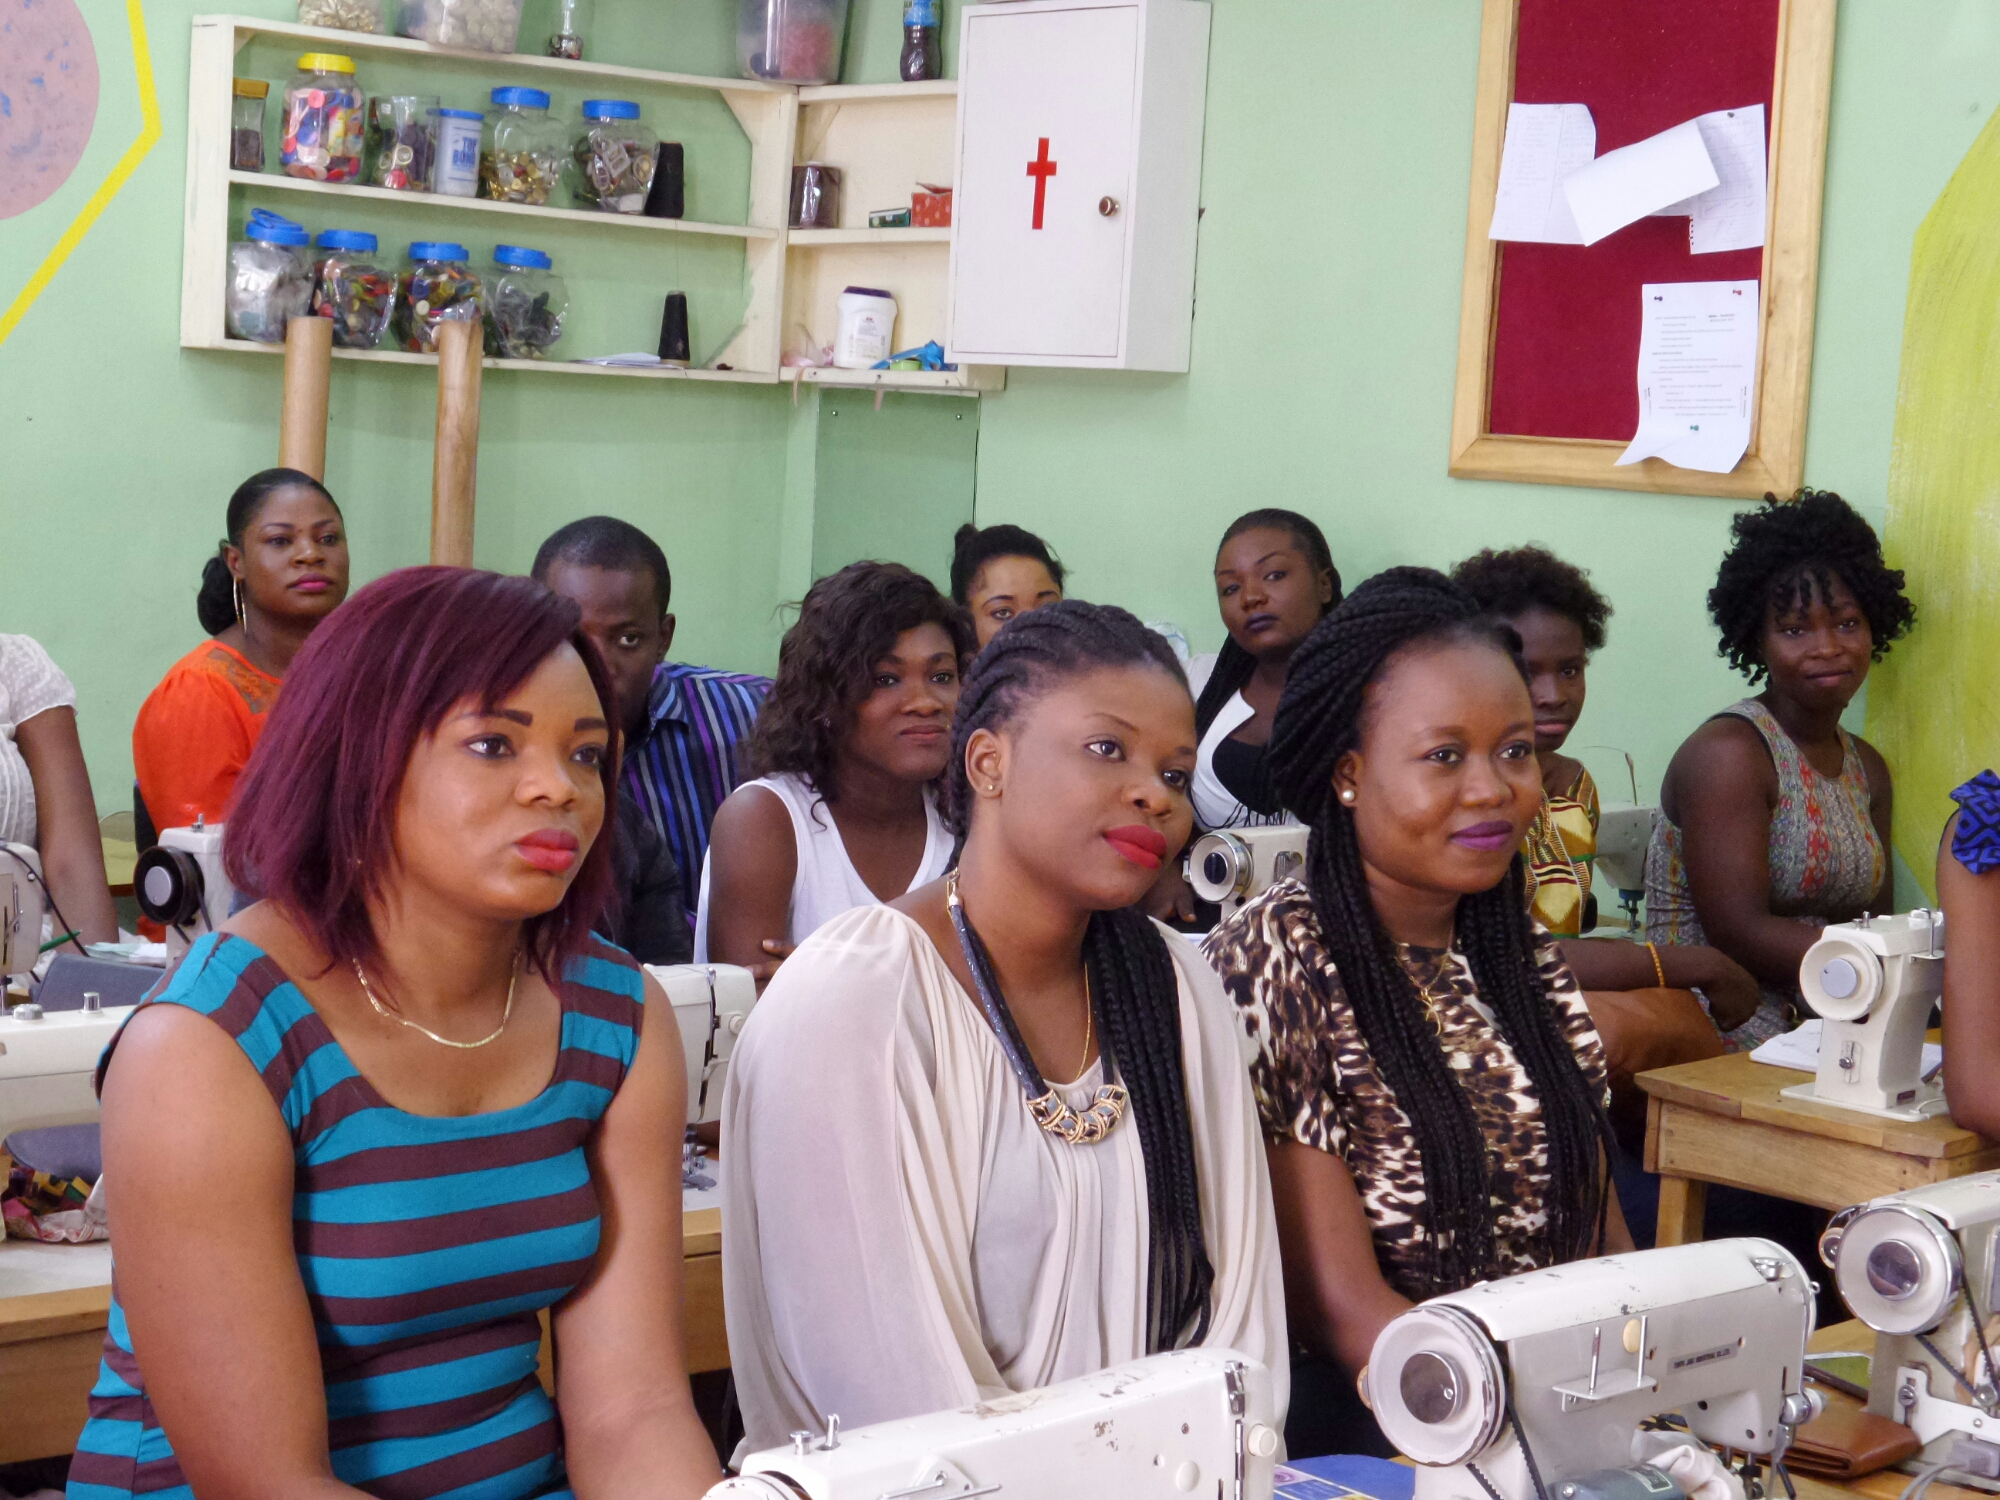 Fashion School In Ibadan Tailoring And Entrepreneurial Classes Dgvstyles Ibadancity Fashion College Our Blog